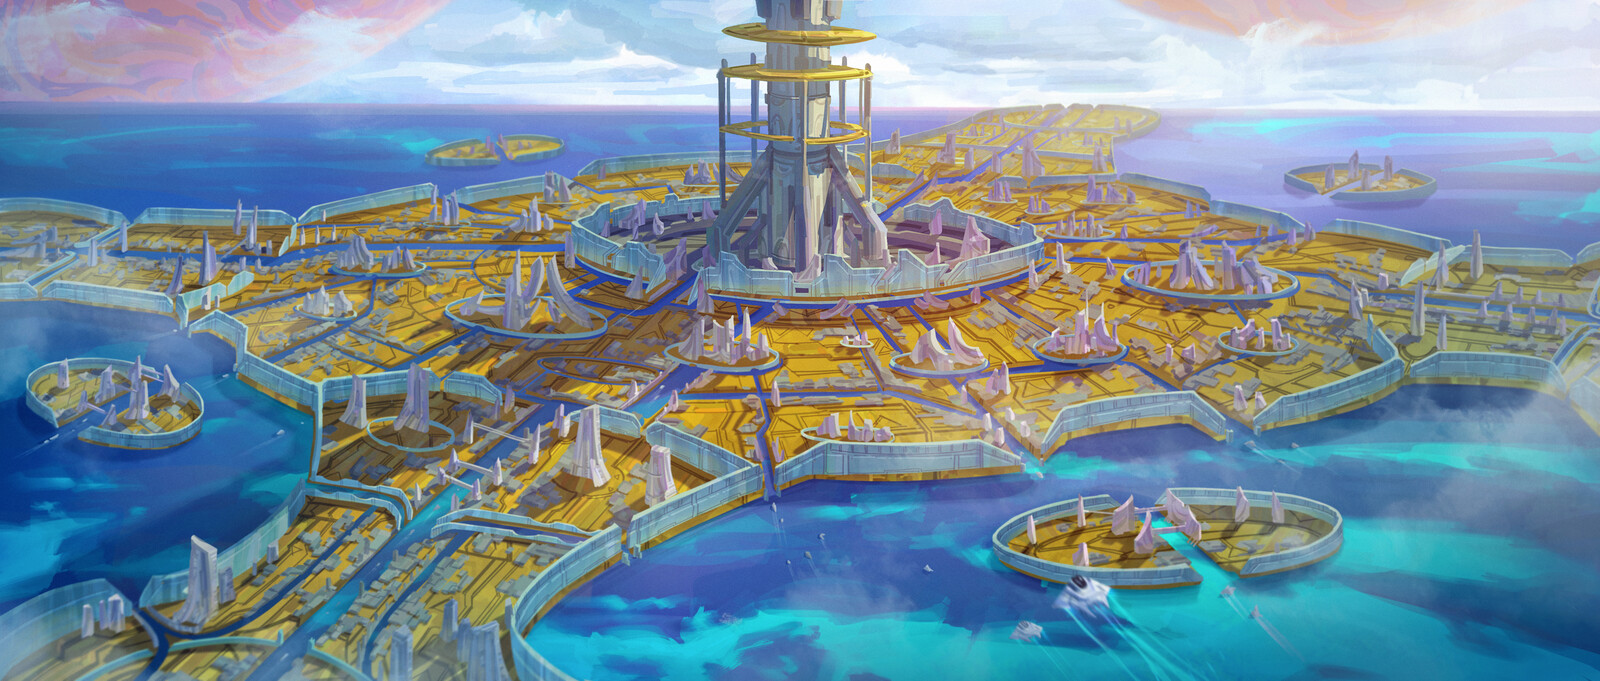 Ocean World with Space Elevator